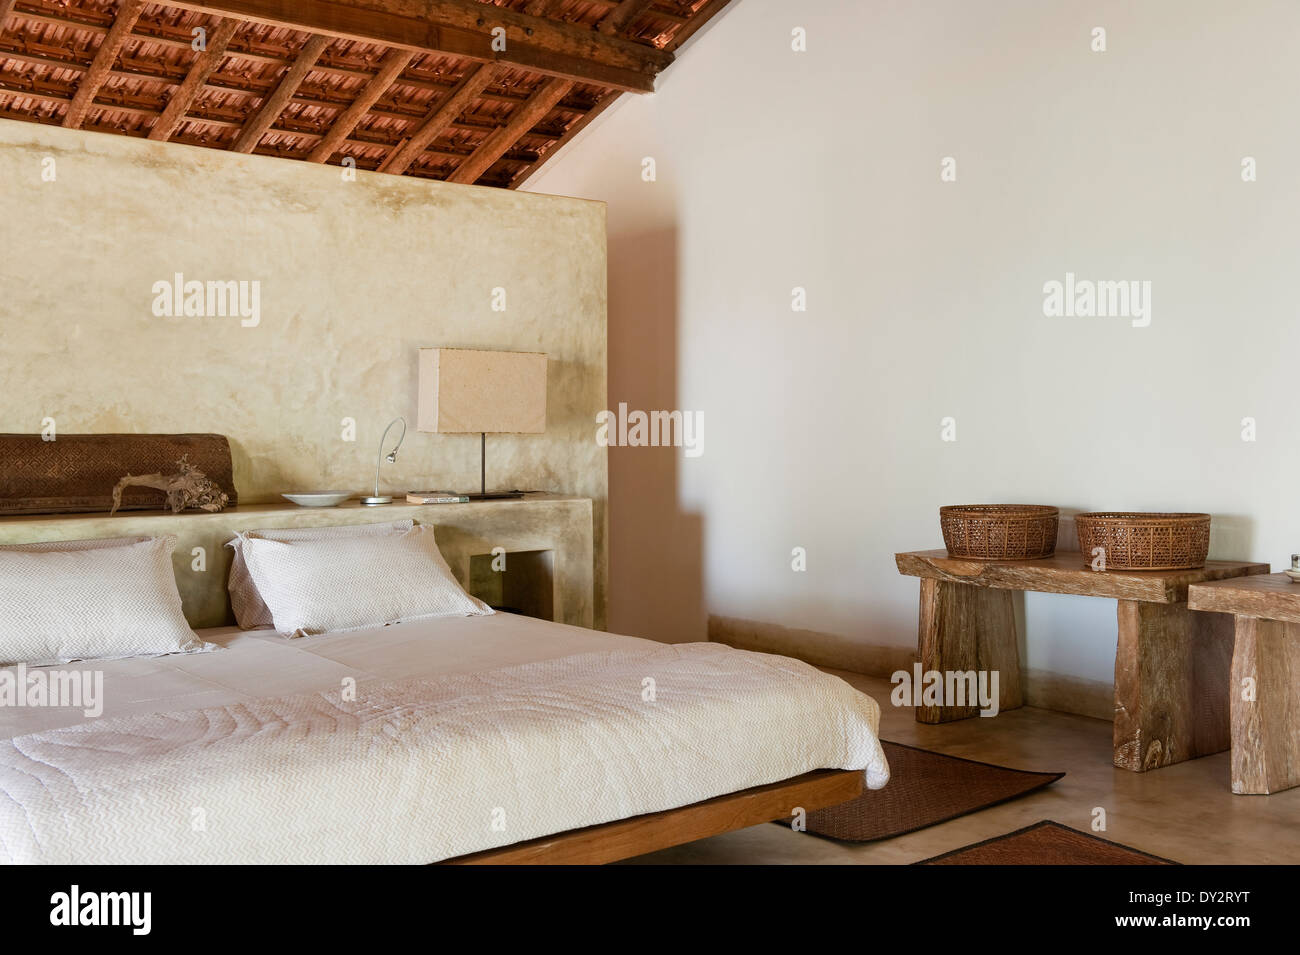 Goan beach house bedroom, India - Stock Image